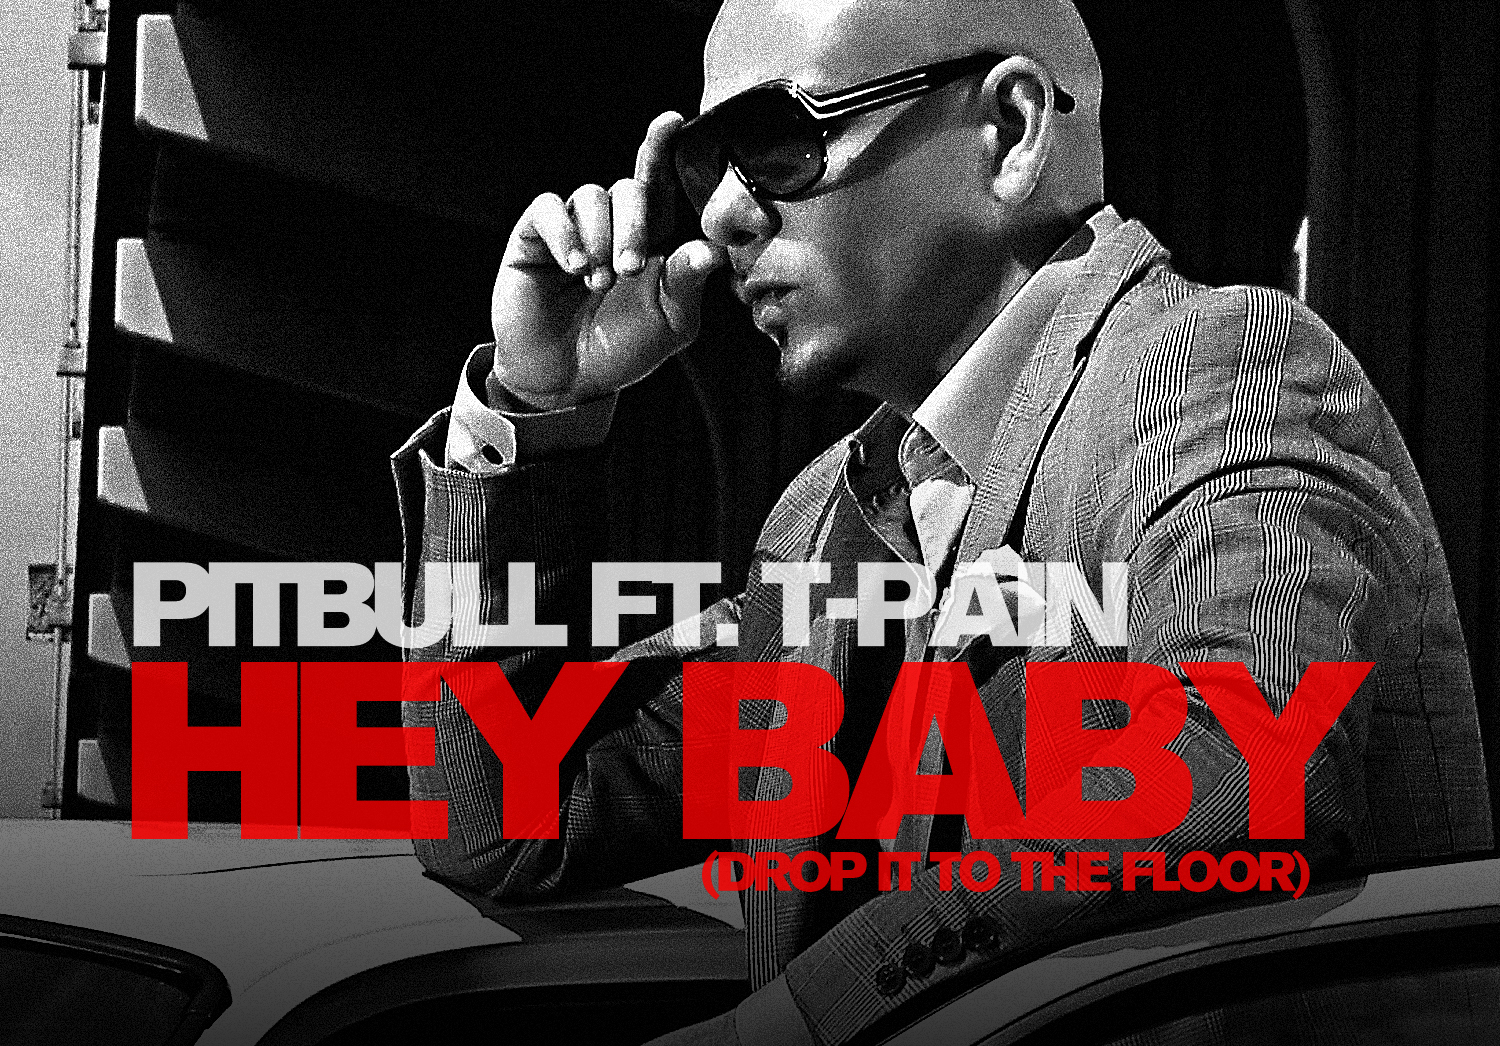 Pitbull ft. T-pain hey baby (alvaro remix) *official remix* by.